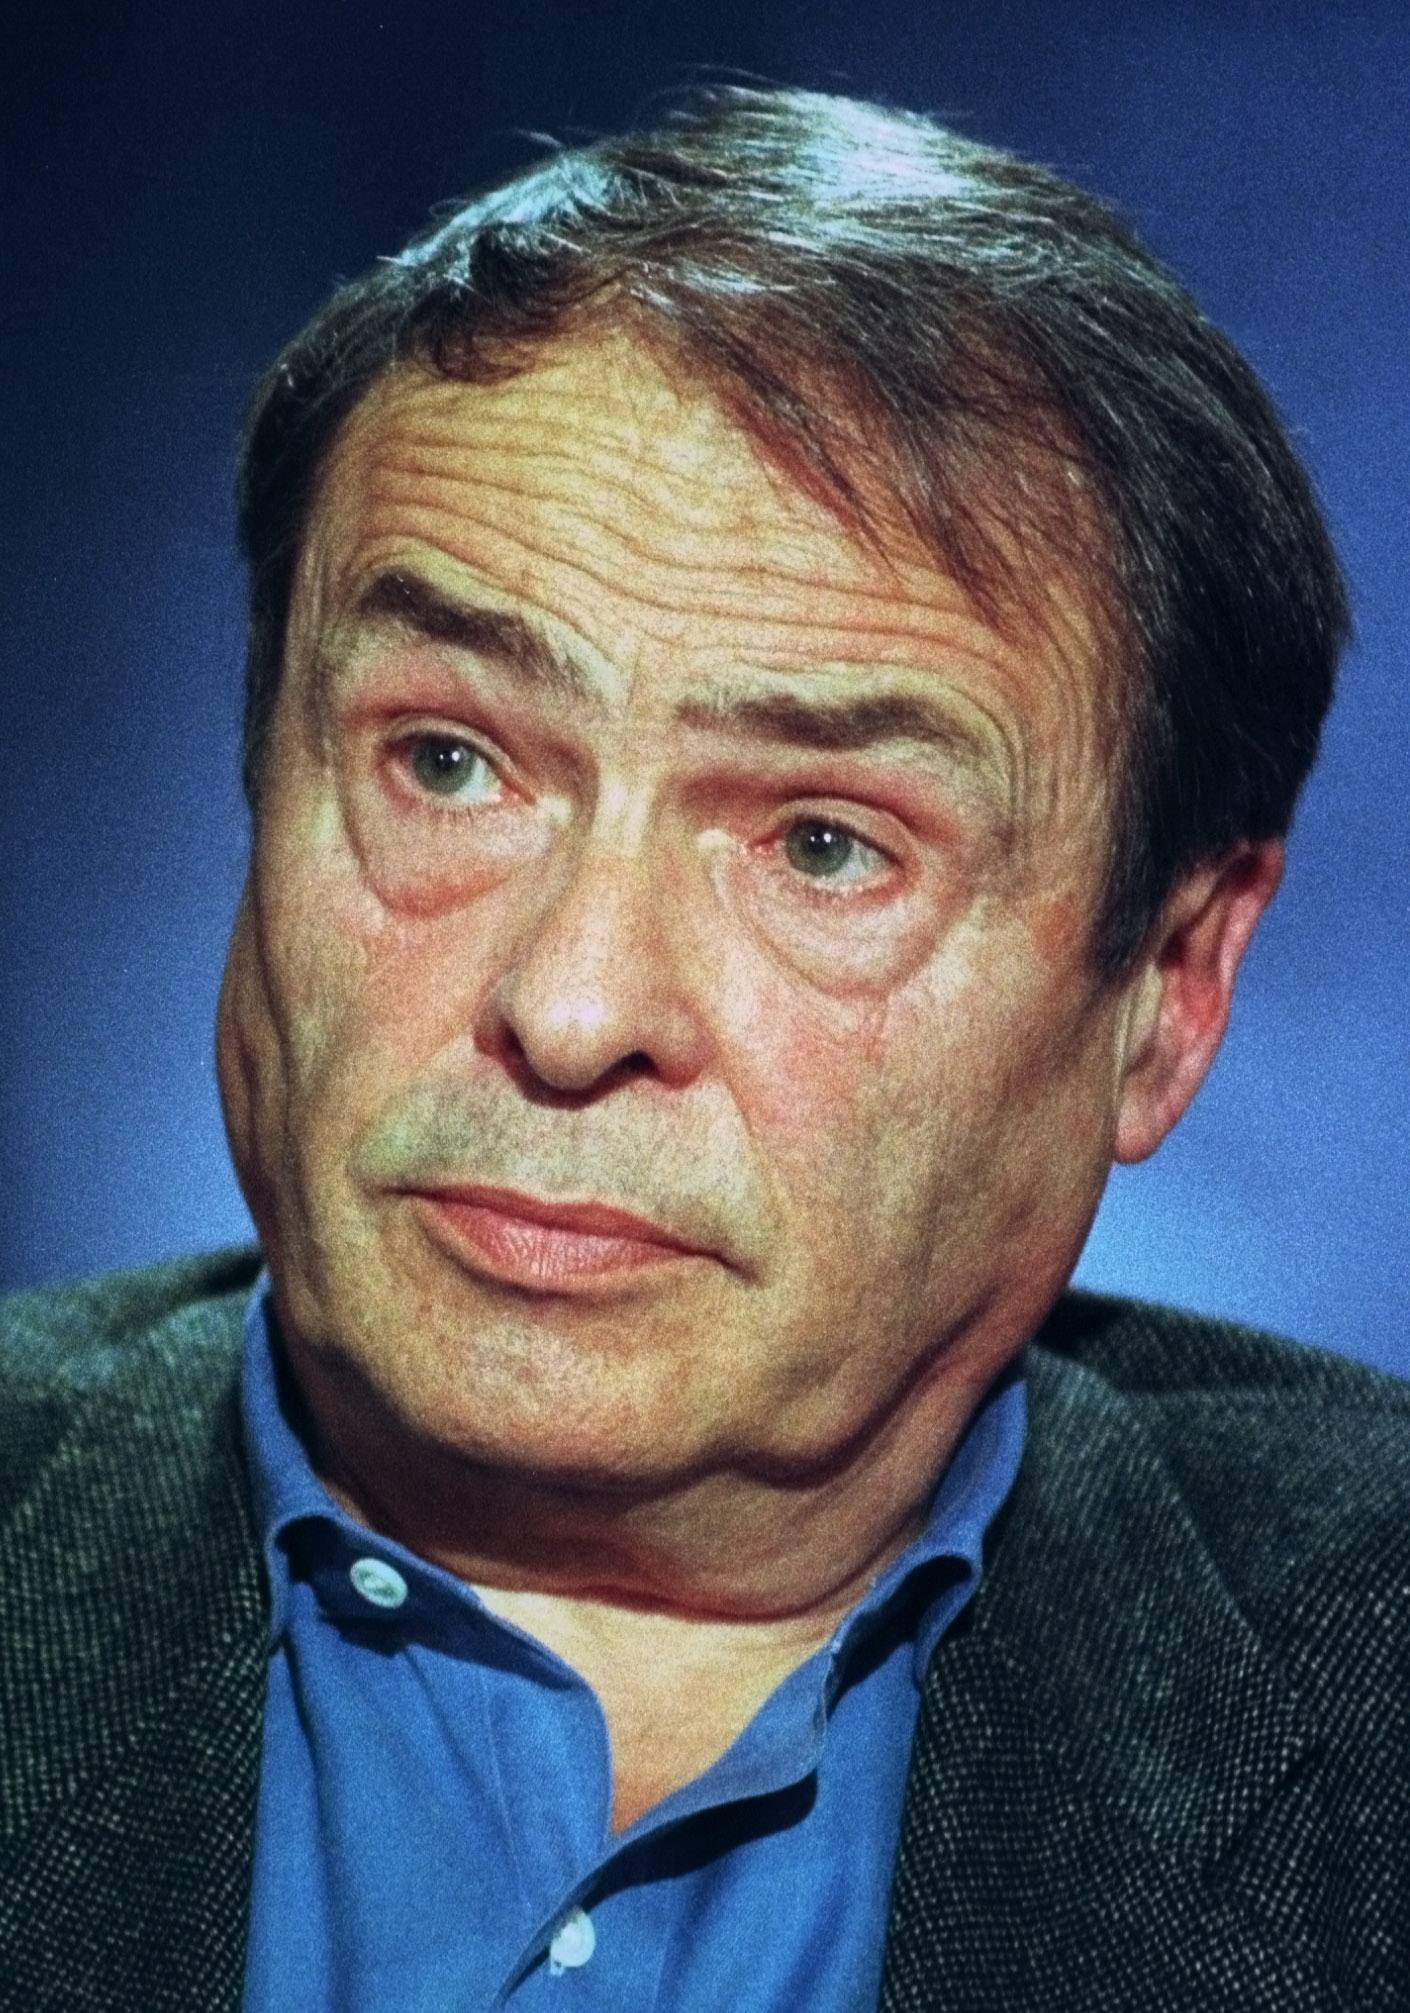 French philosopher and sociologist Pierre Bourdieu ponders a question during a conference in Paris in this Oct. 7, 1998 photo. Bourdieu died of cancer at a Paris hospital on Thursday, Jan. 24, 2002. He was 71. (AP Photo/Remy de la Mauviniere)